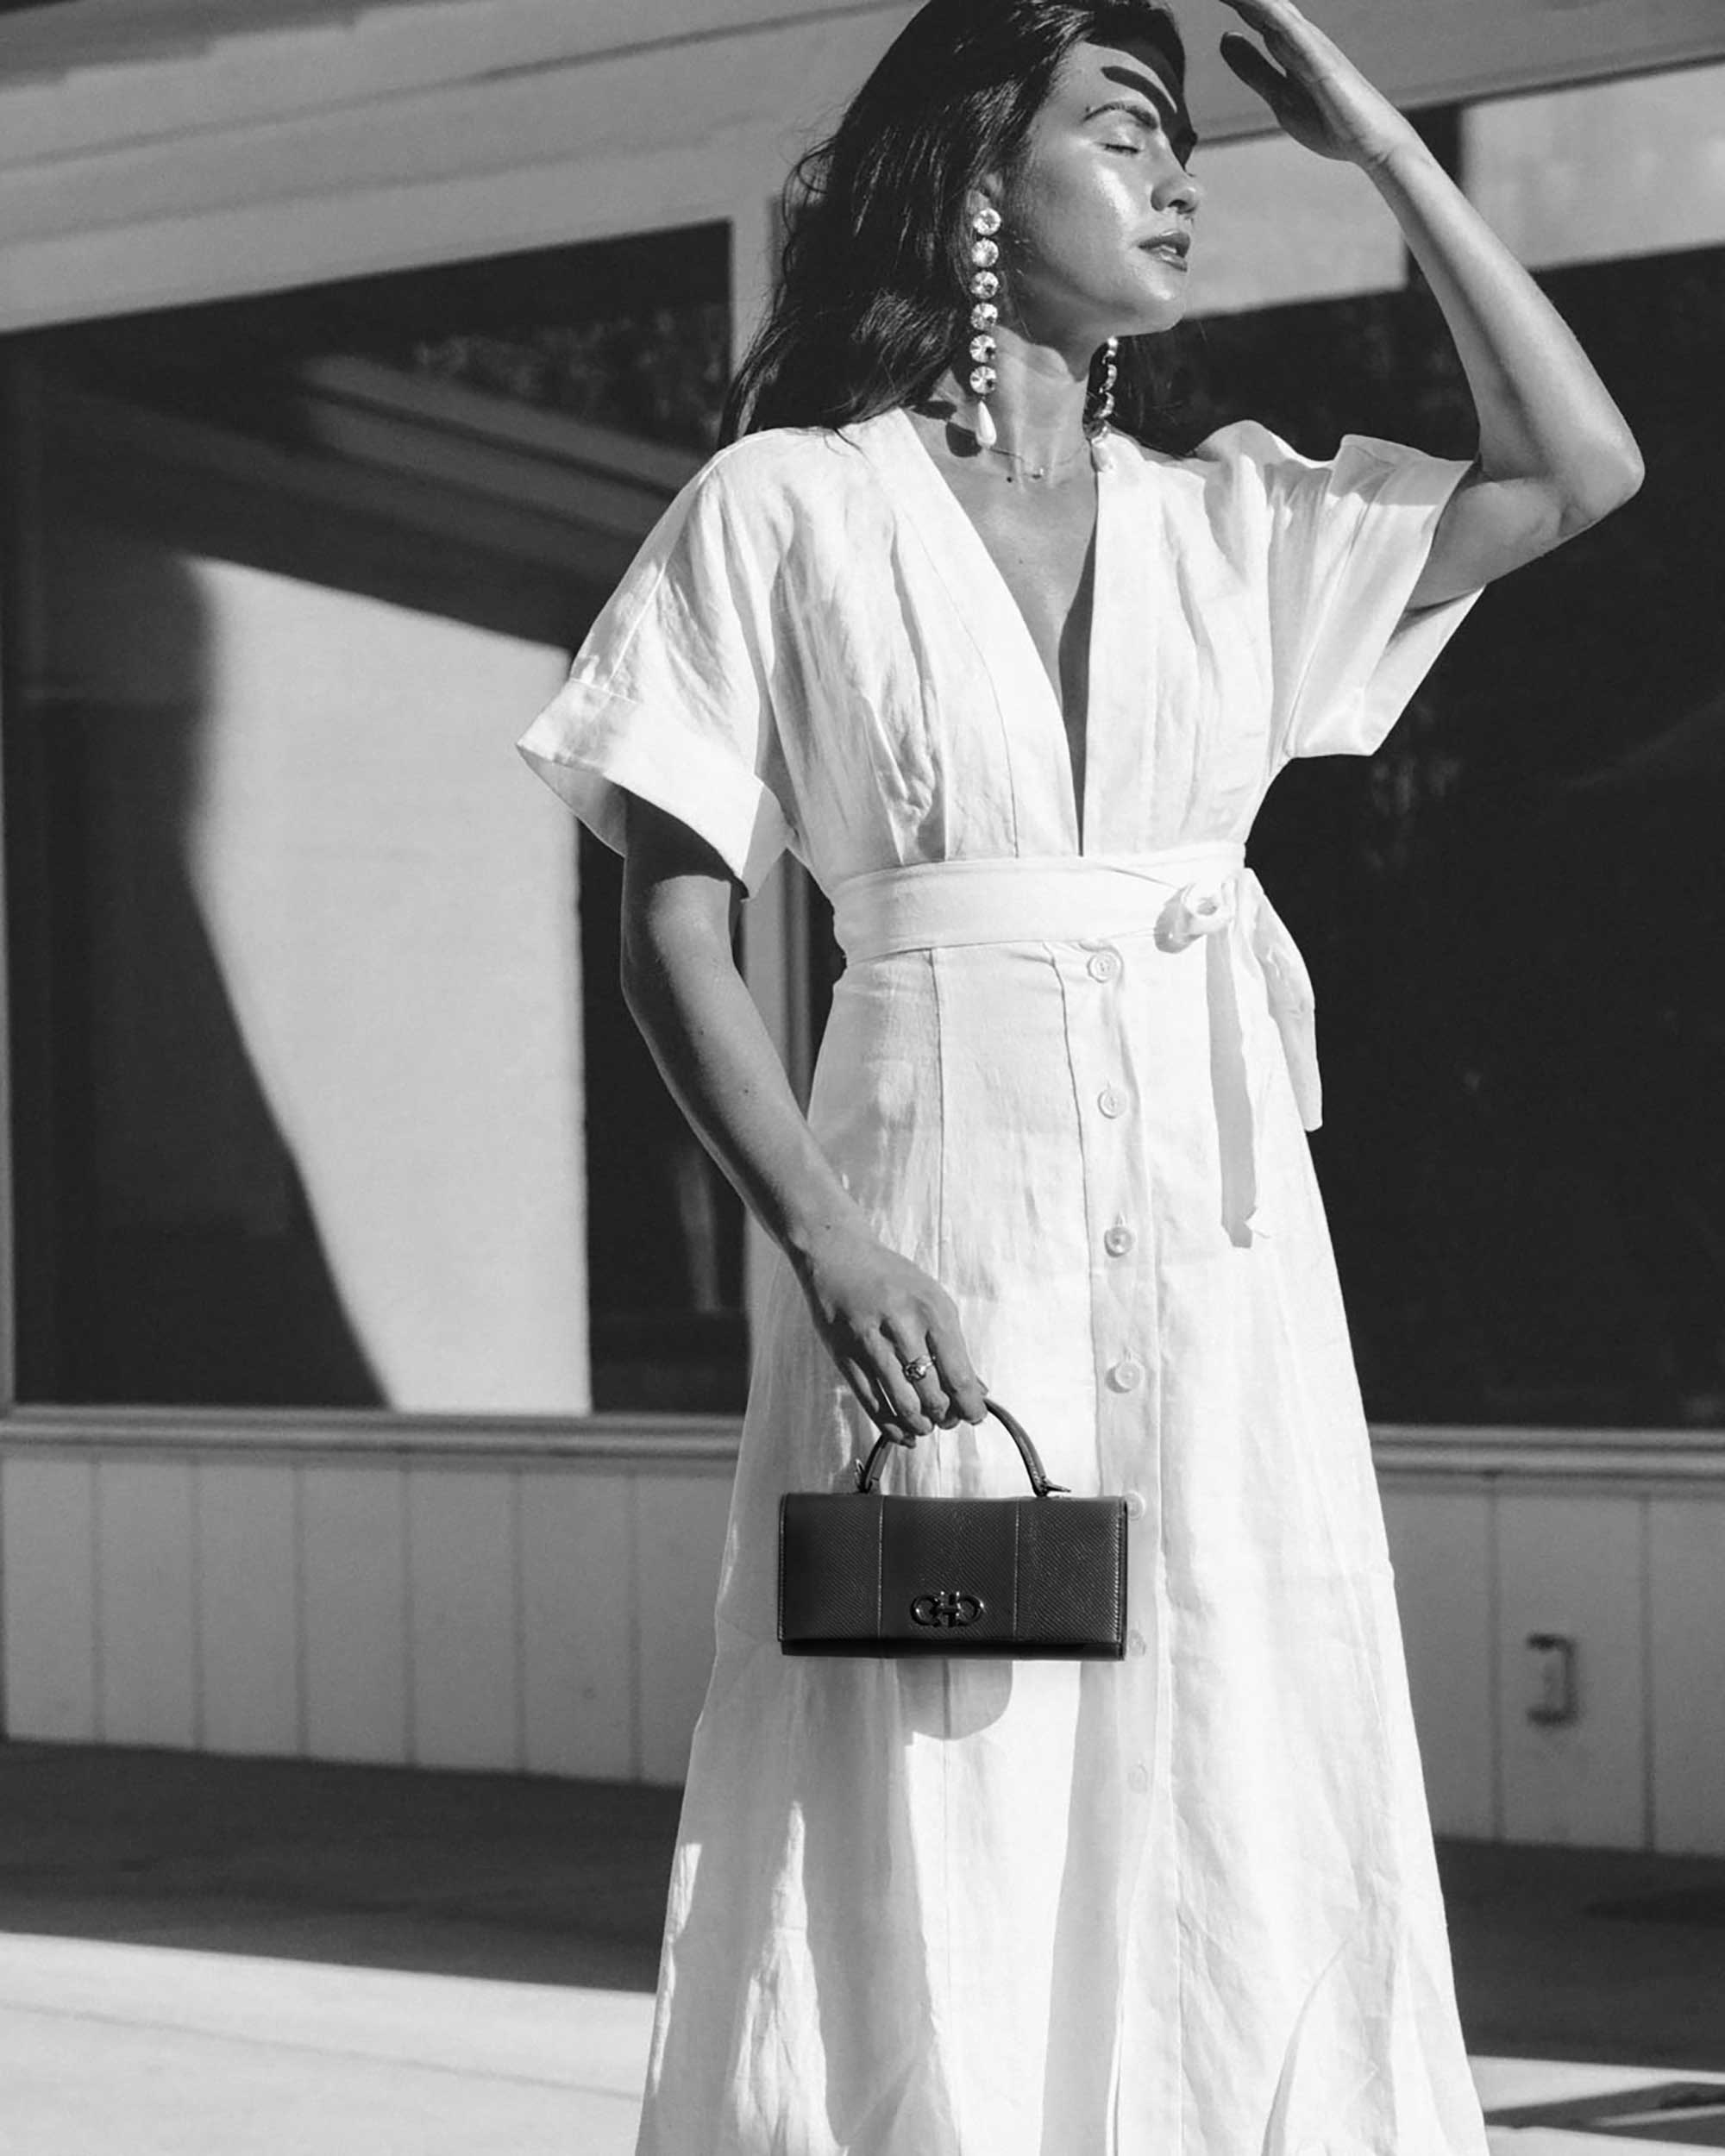 Sarah Butler of Sarah Styles Seattle wears Nauman Linen Dress in Bright White and Ferragamo Mini Gancini Top Handle Wallet in Palm Springs Outfit | @sarahchristine -4.jpg